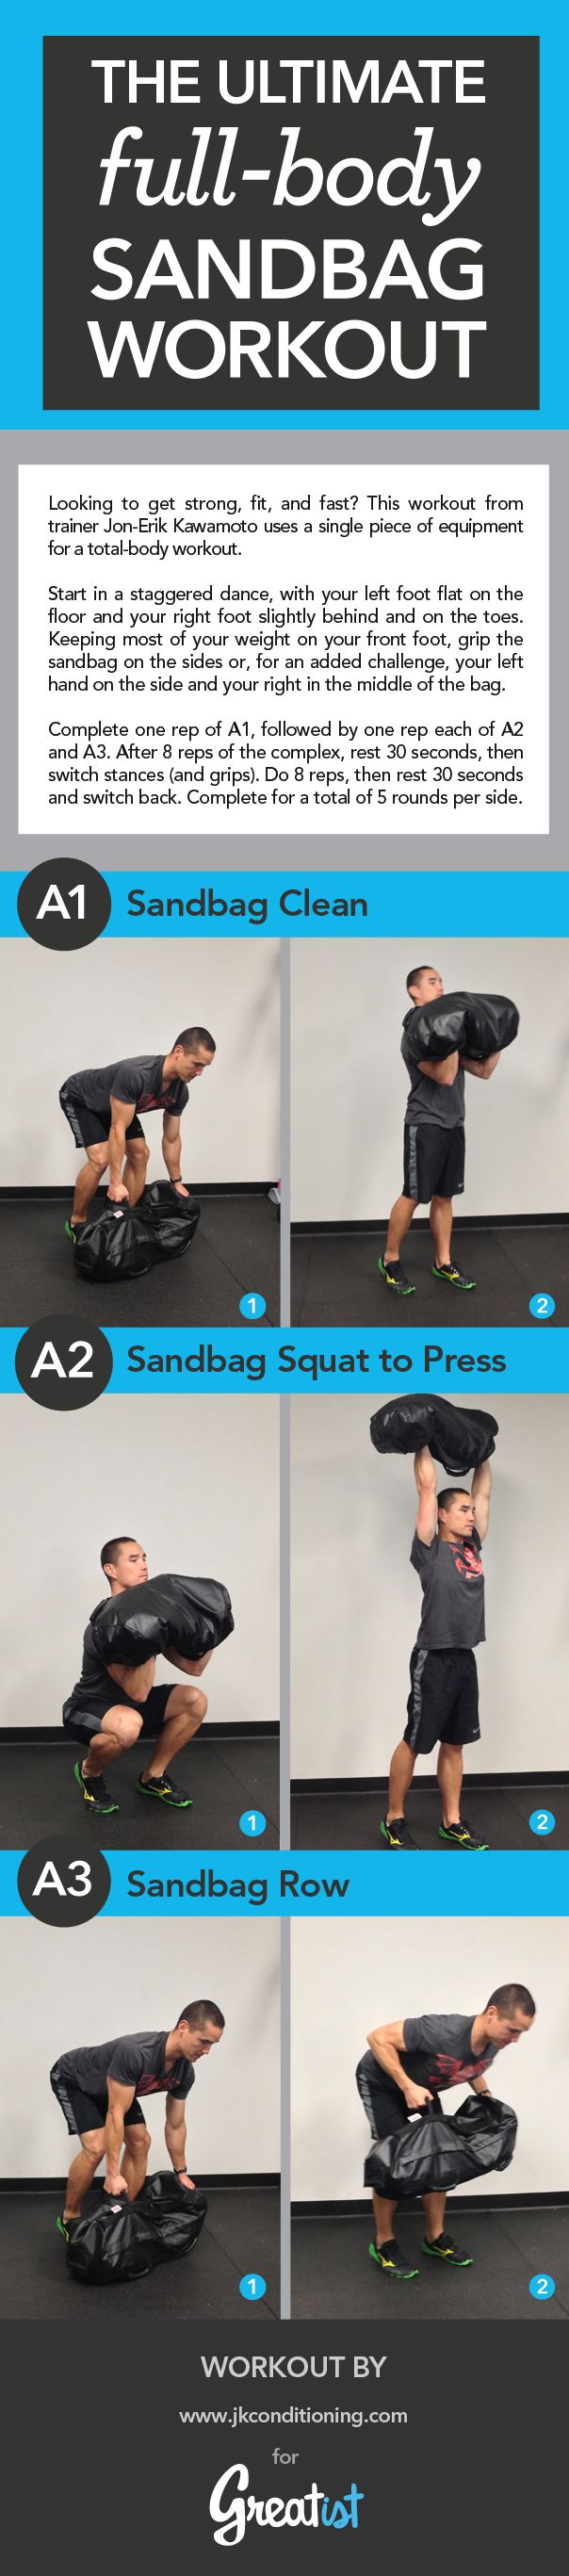 Mix up your workout with sandbag training. Our full-body workout builds speed, power, and strength in just 30 minutes.